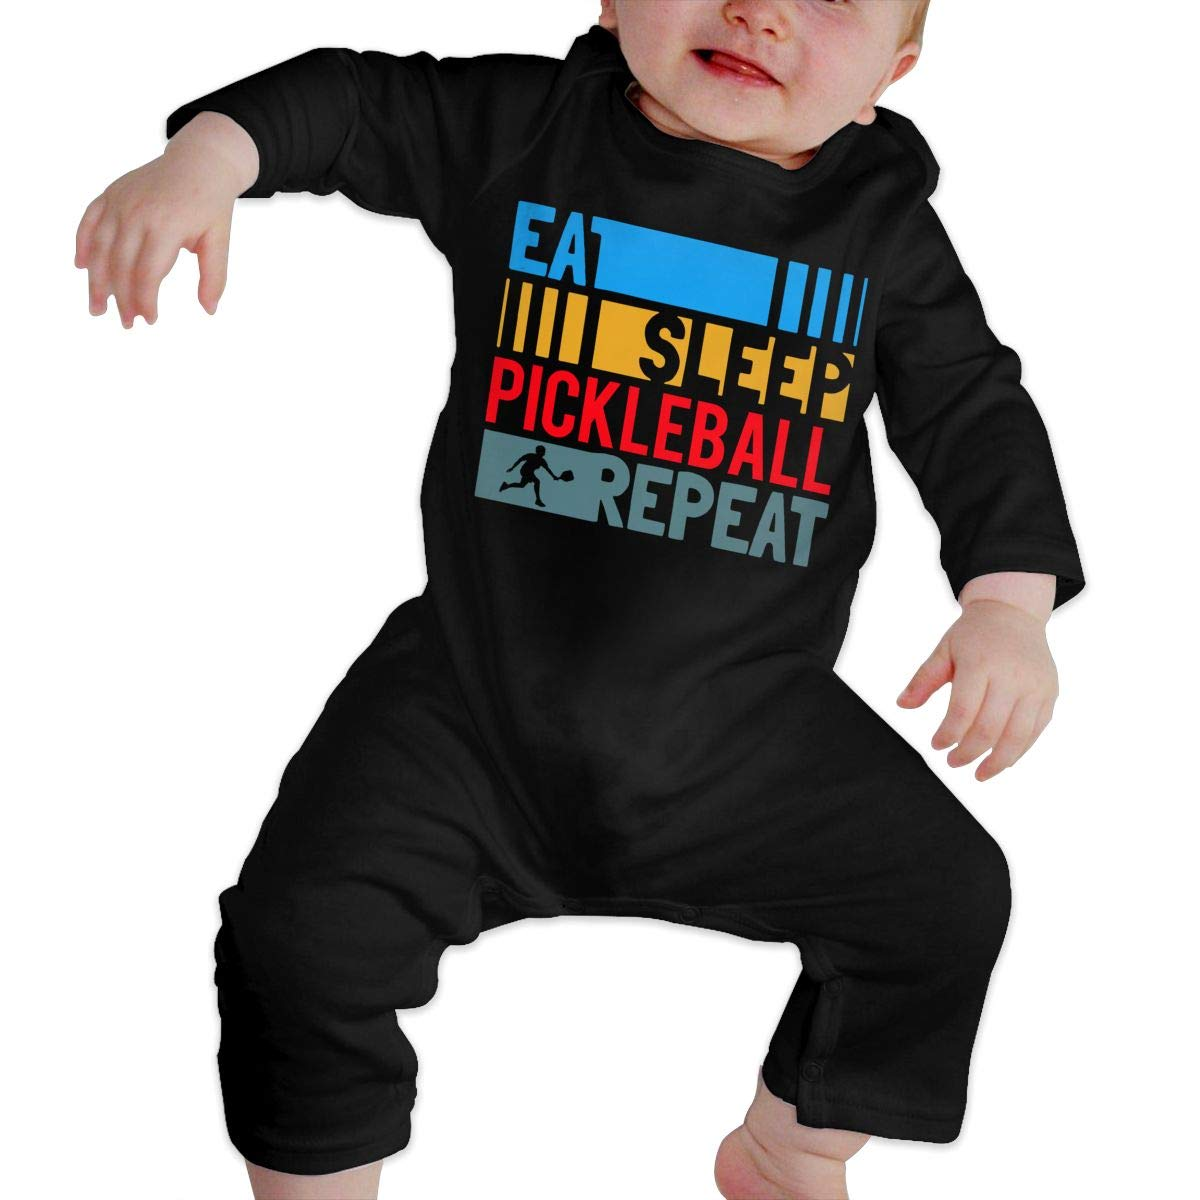 UGFGF-S3 Eat Sleep Pickleball Repeat Baby Boy Long Sleeve Romper Jumpsuit Jumpsuit